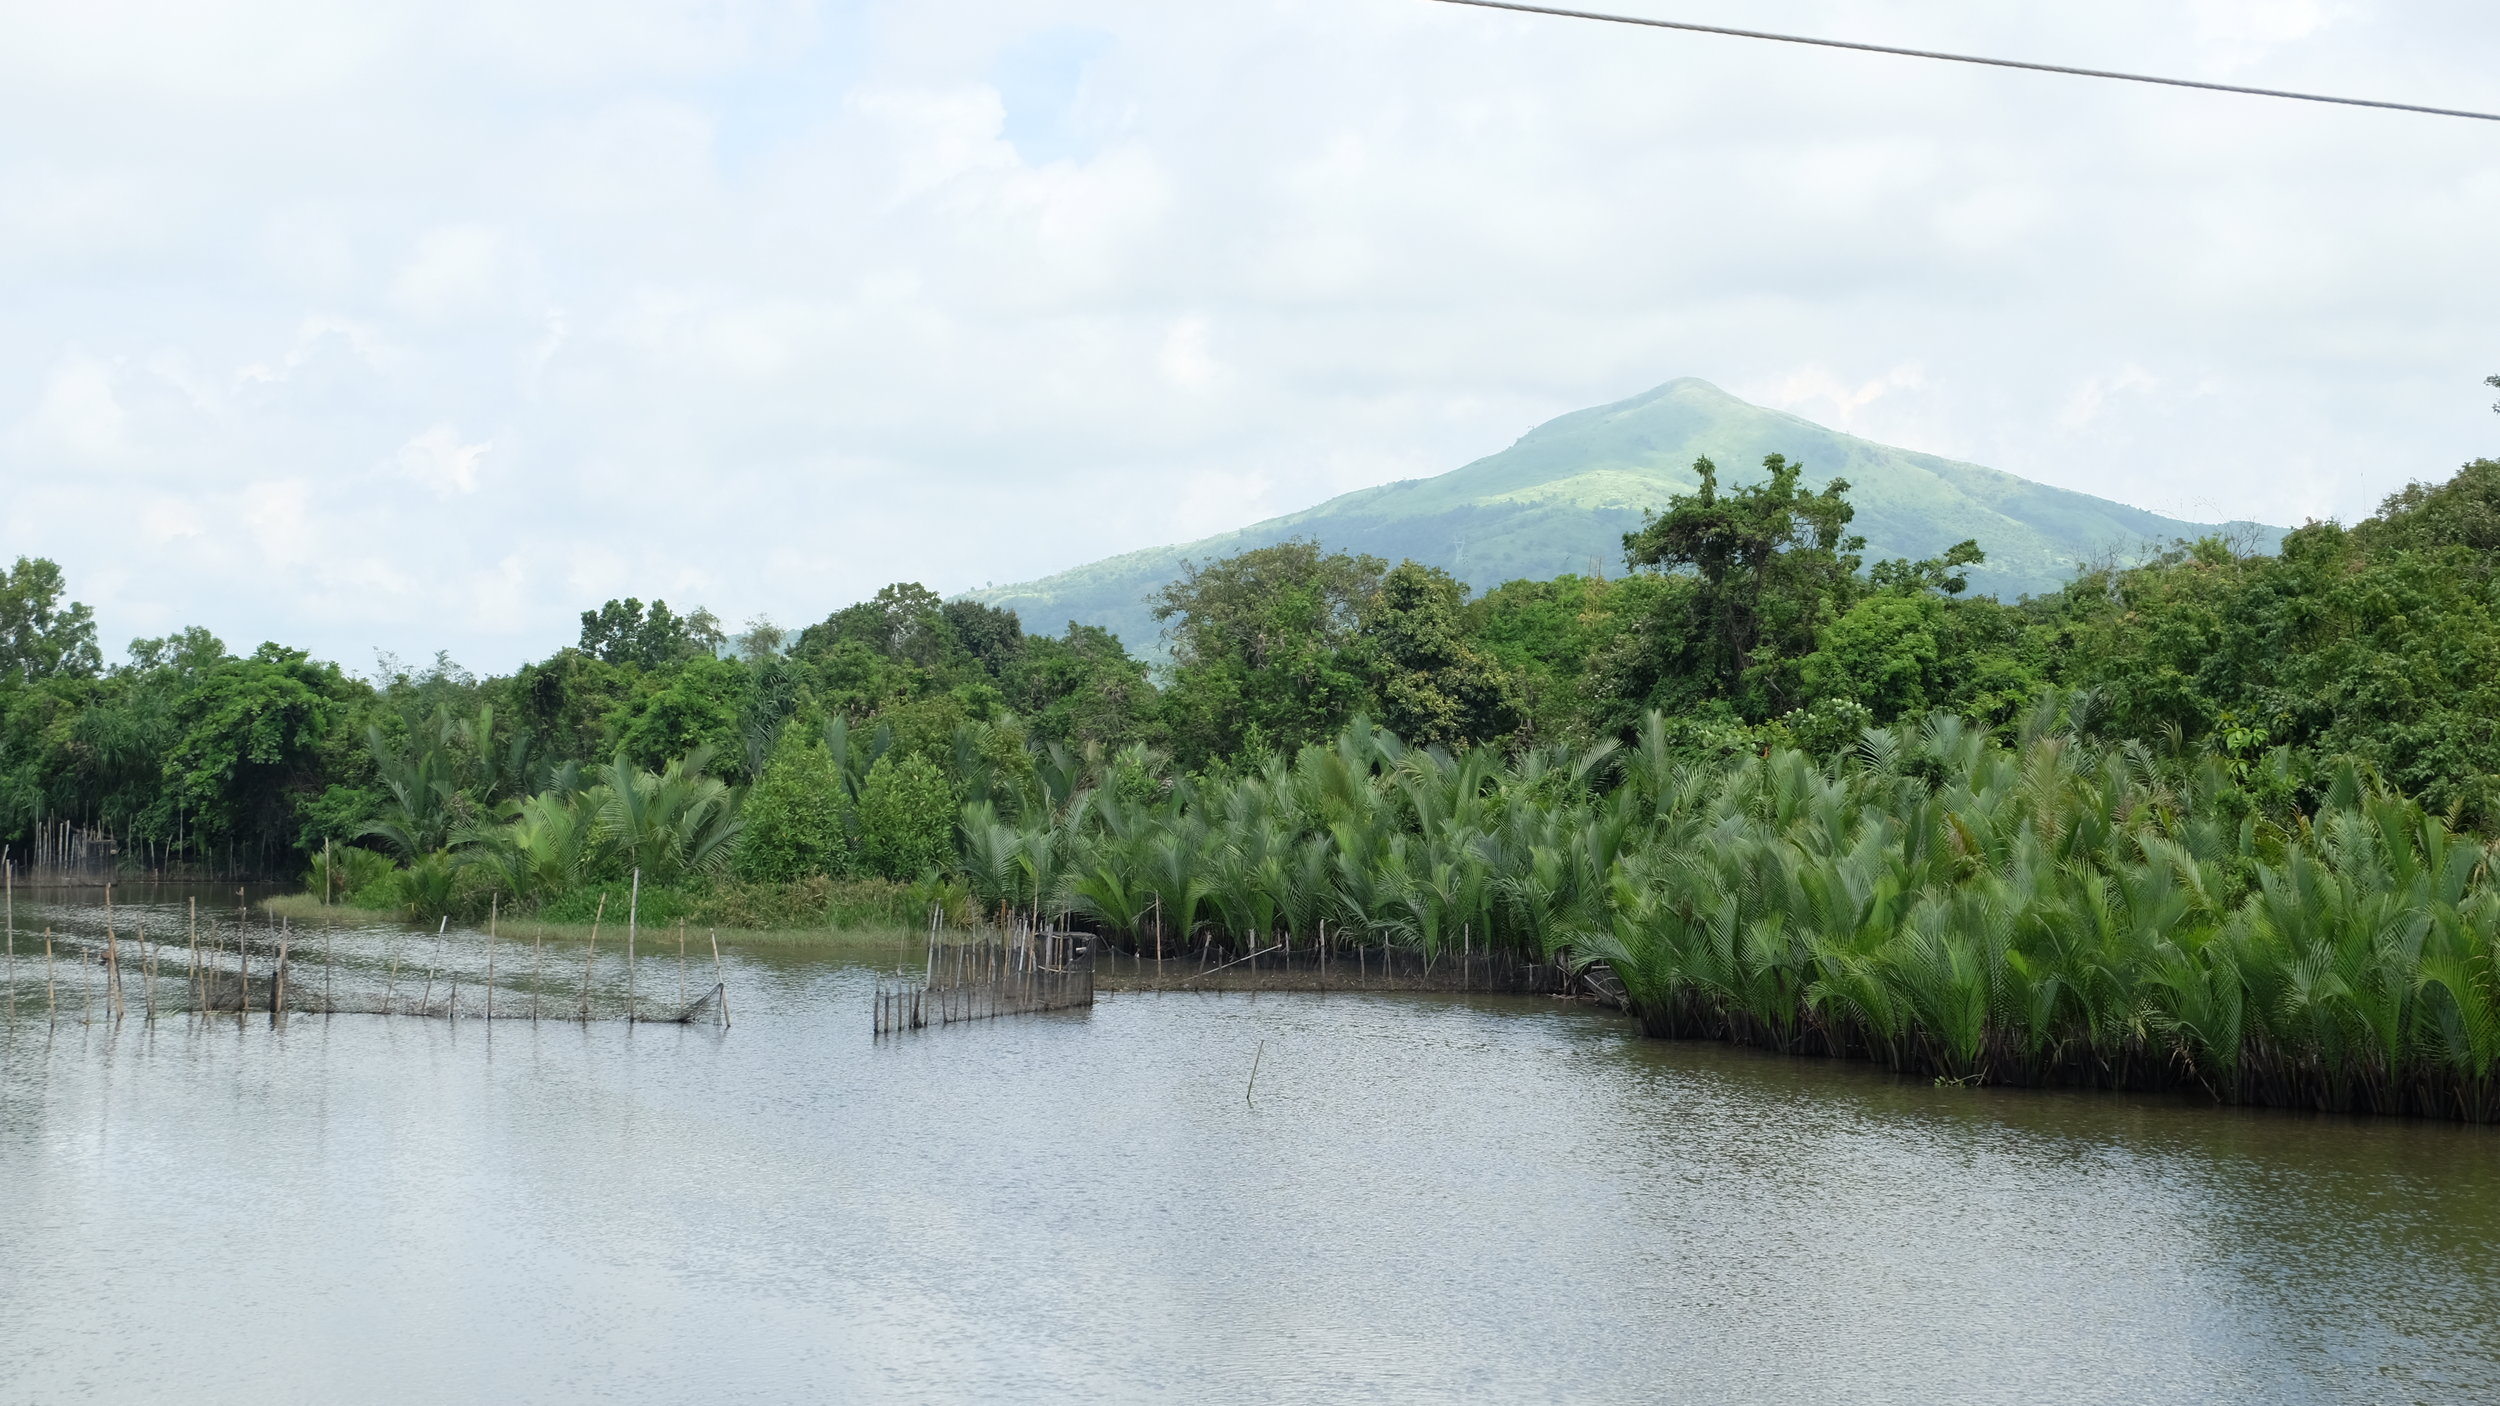 The River - There were fishing nets, and life thriving in here!